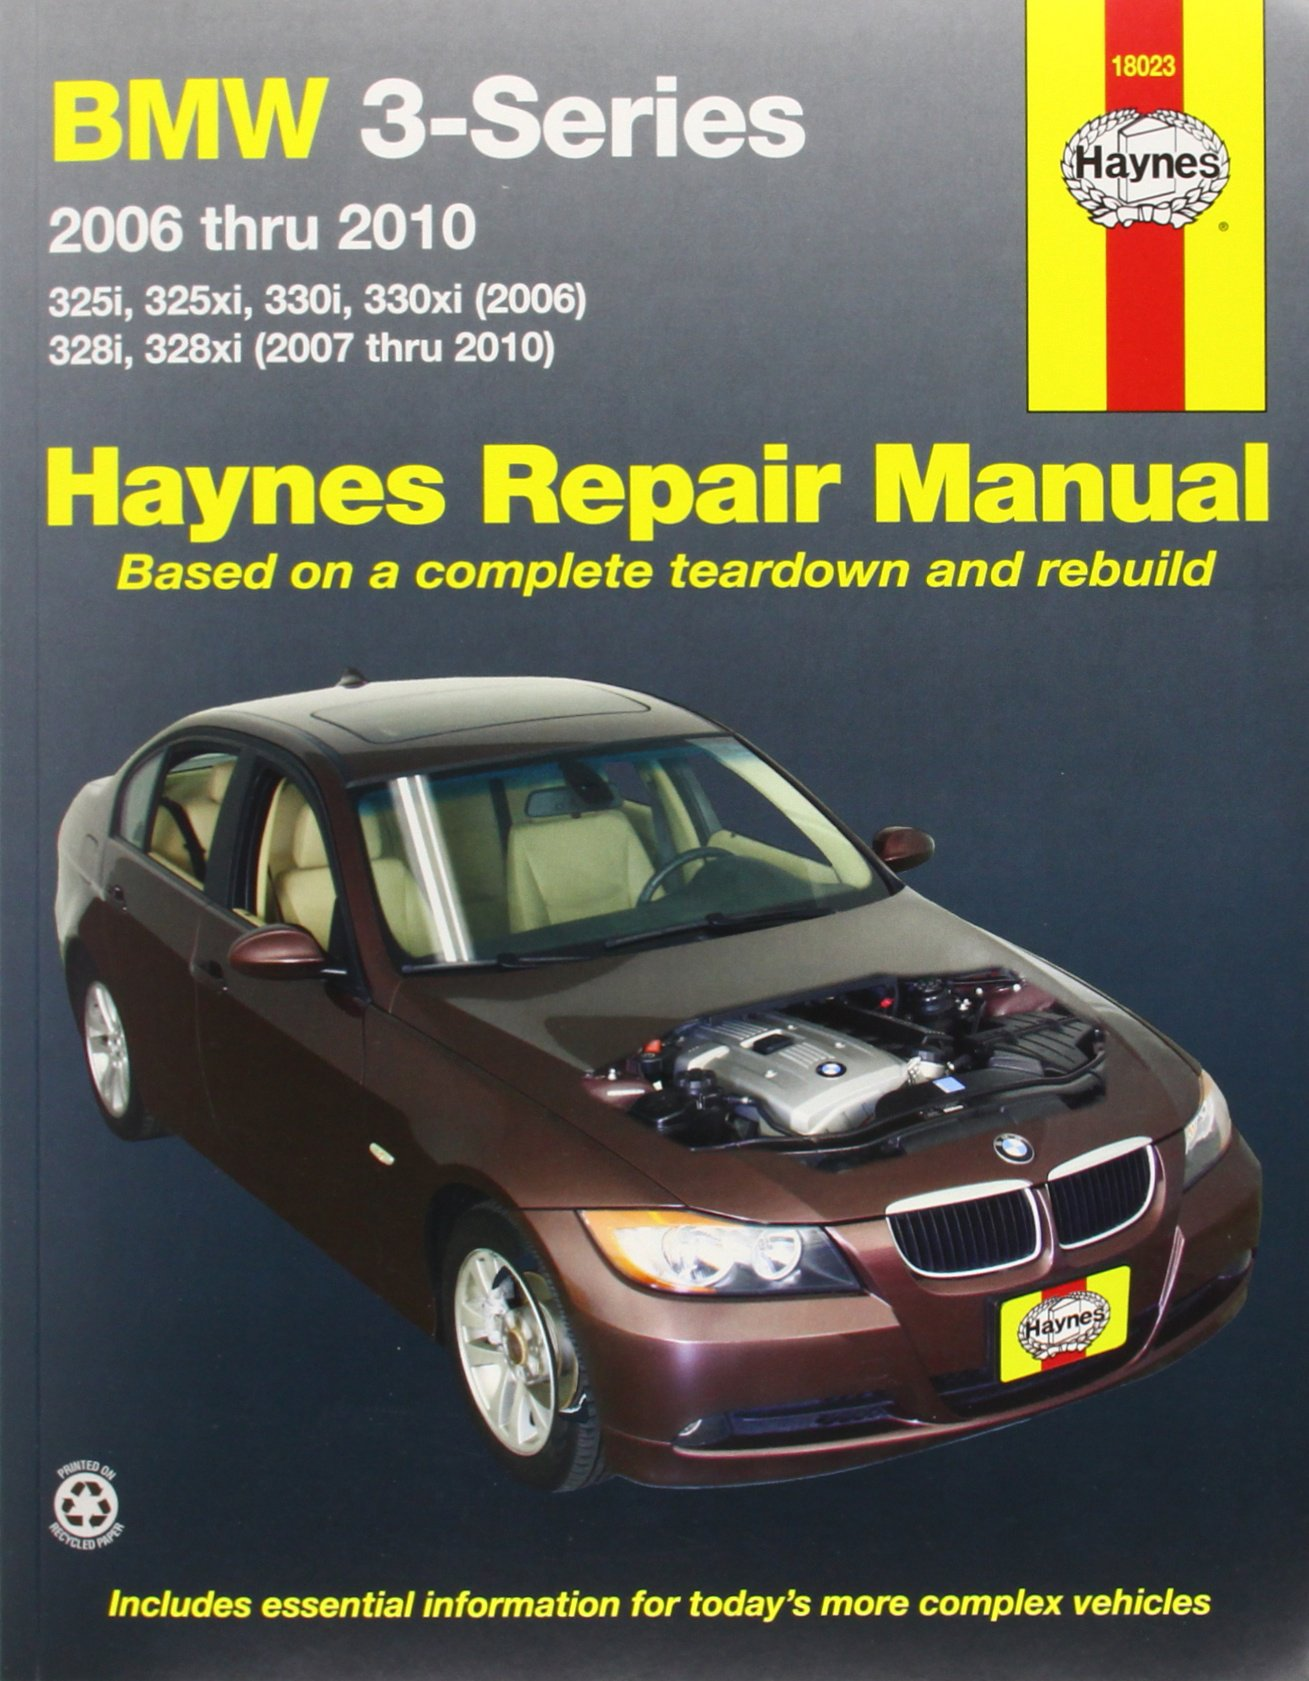 bmw 3 series automotive repair manual 2006 2010 haynes automotive rh amazon co uk bmw 320d service manual bmw 320d f30 owners manual pdf